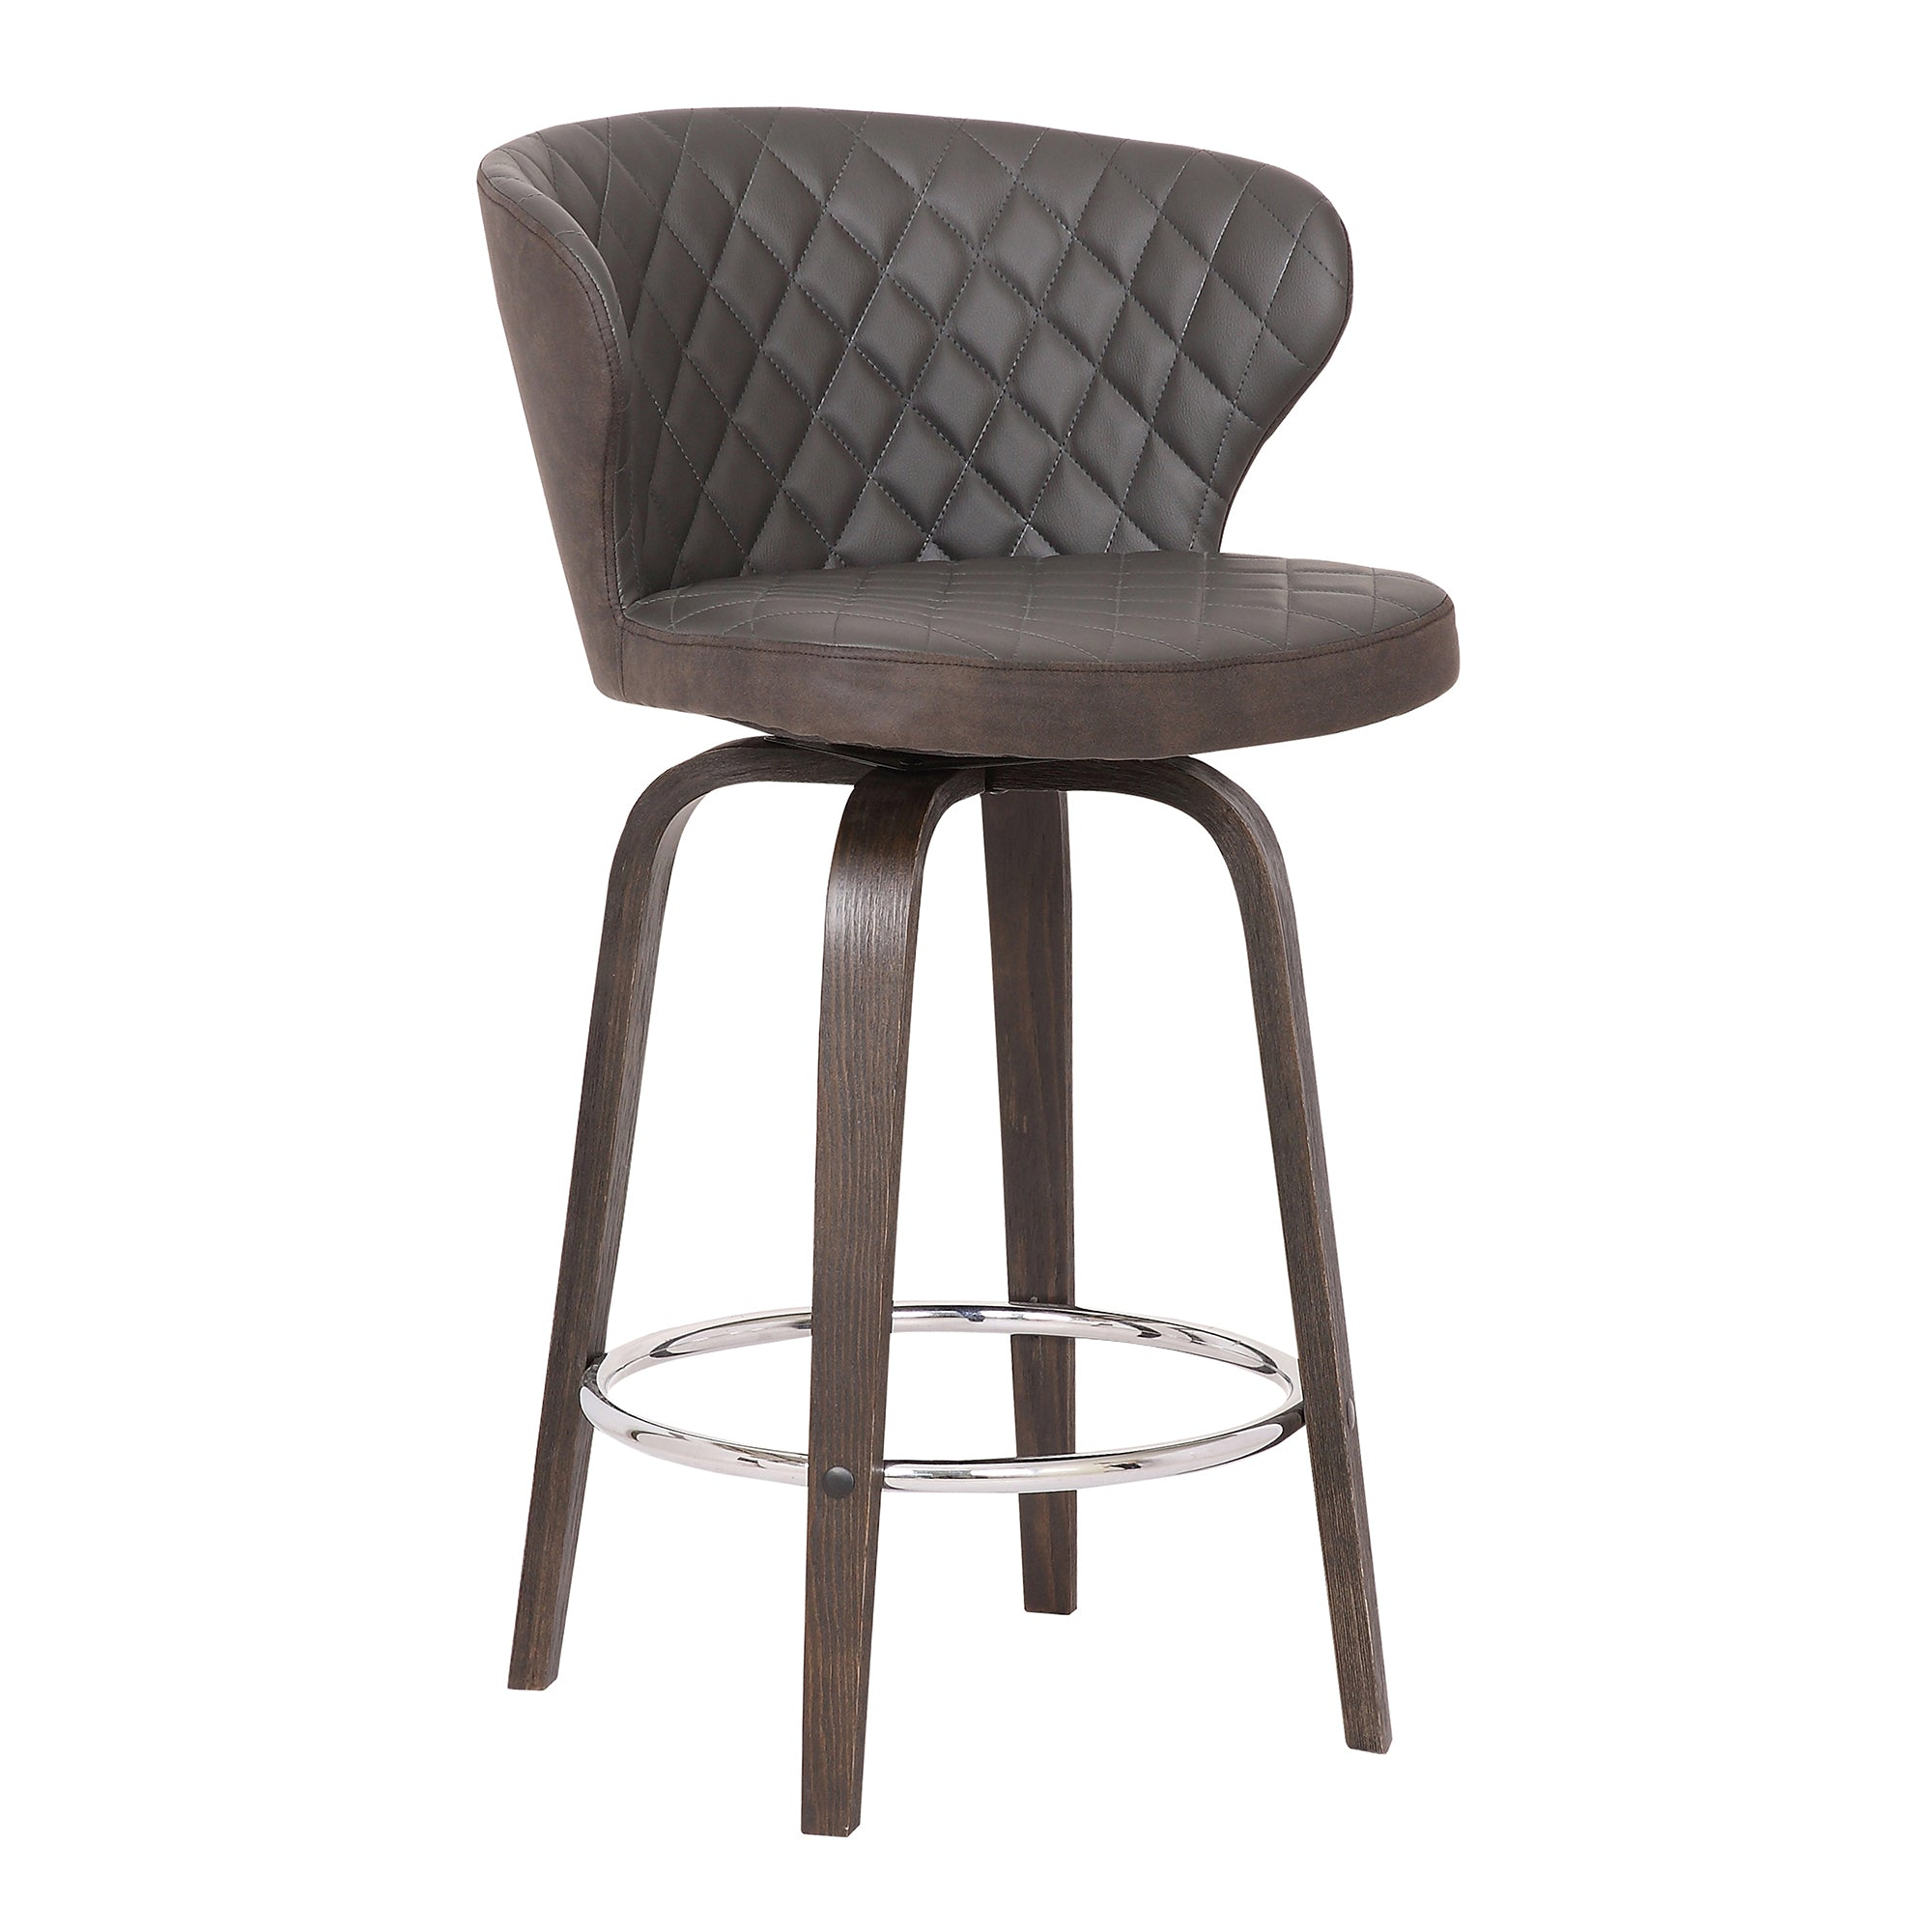 Kitchen Bar Stools with or without Backrest